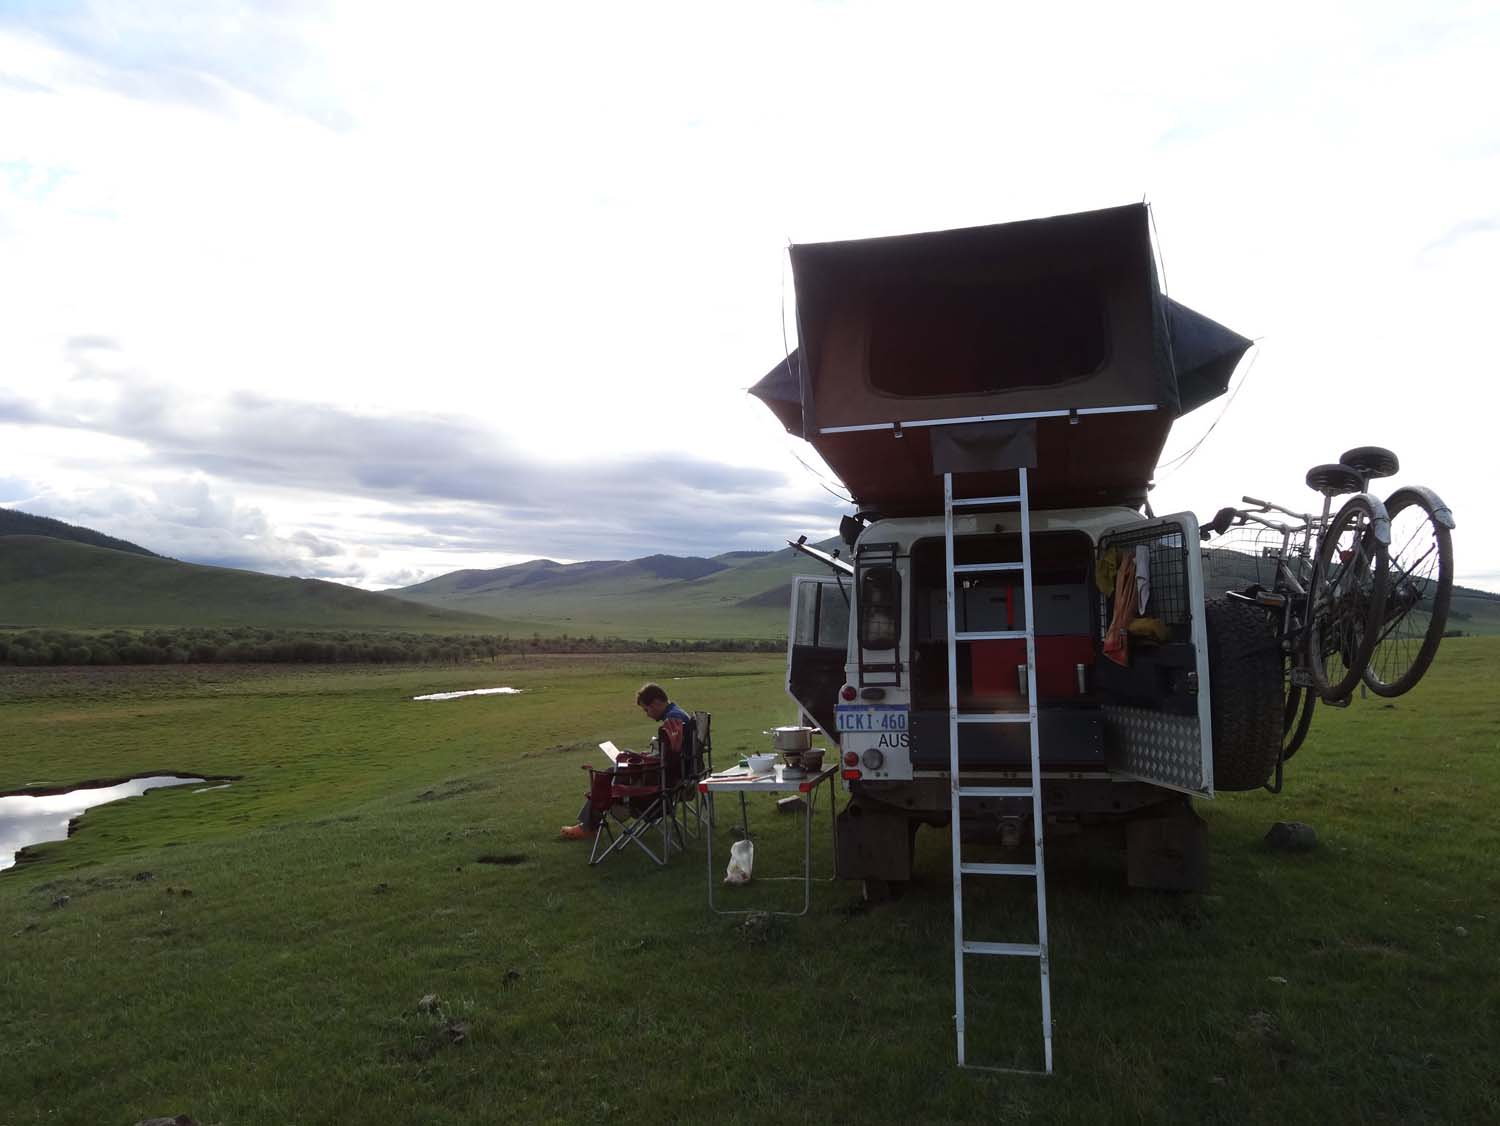 our super stunning campsite, just in the middle of nowhere